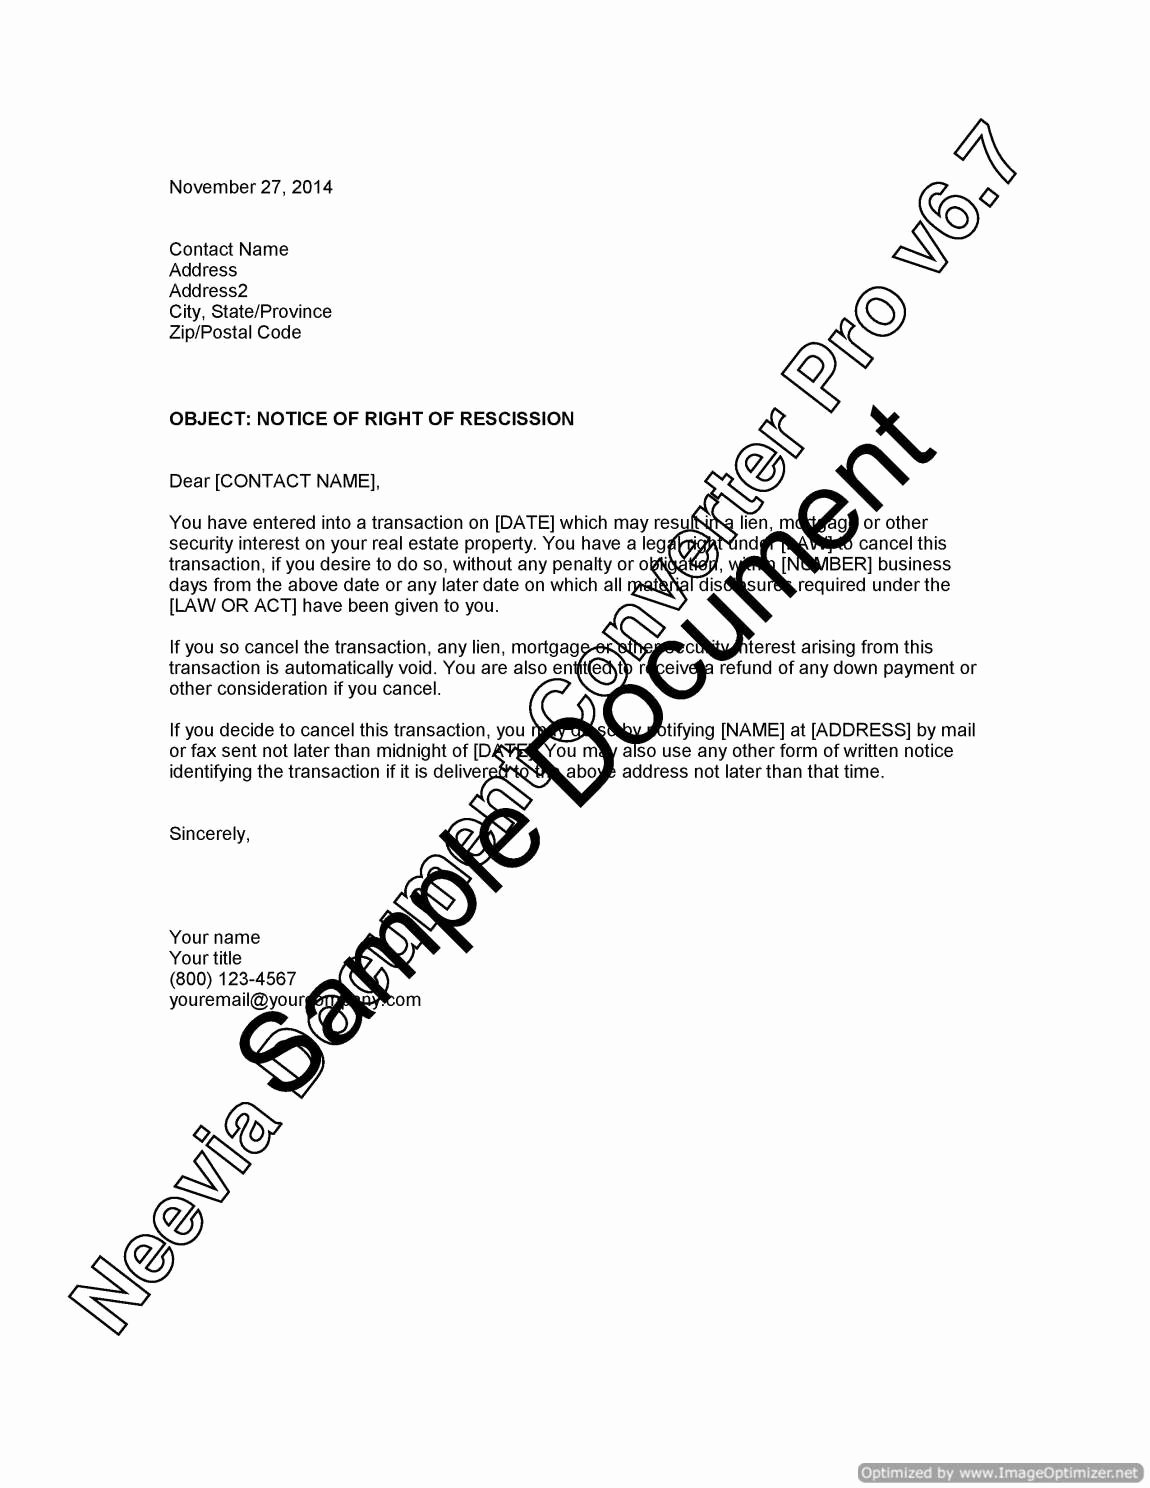 Contract Rescission Letter Luxury Notice Of Right Of Rescission